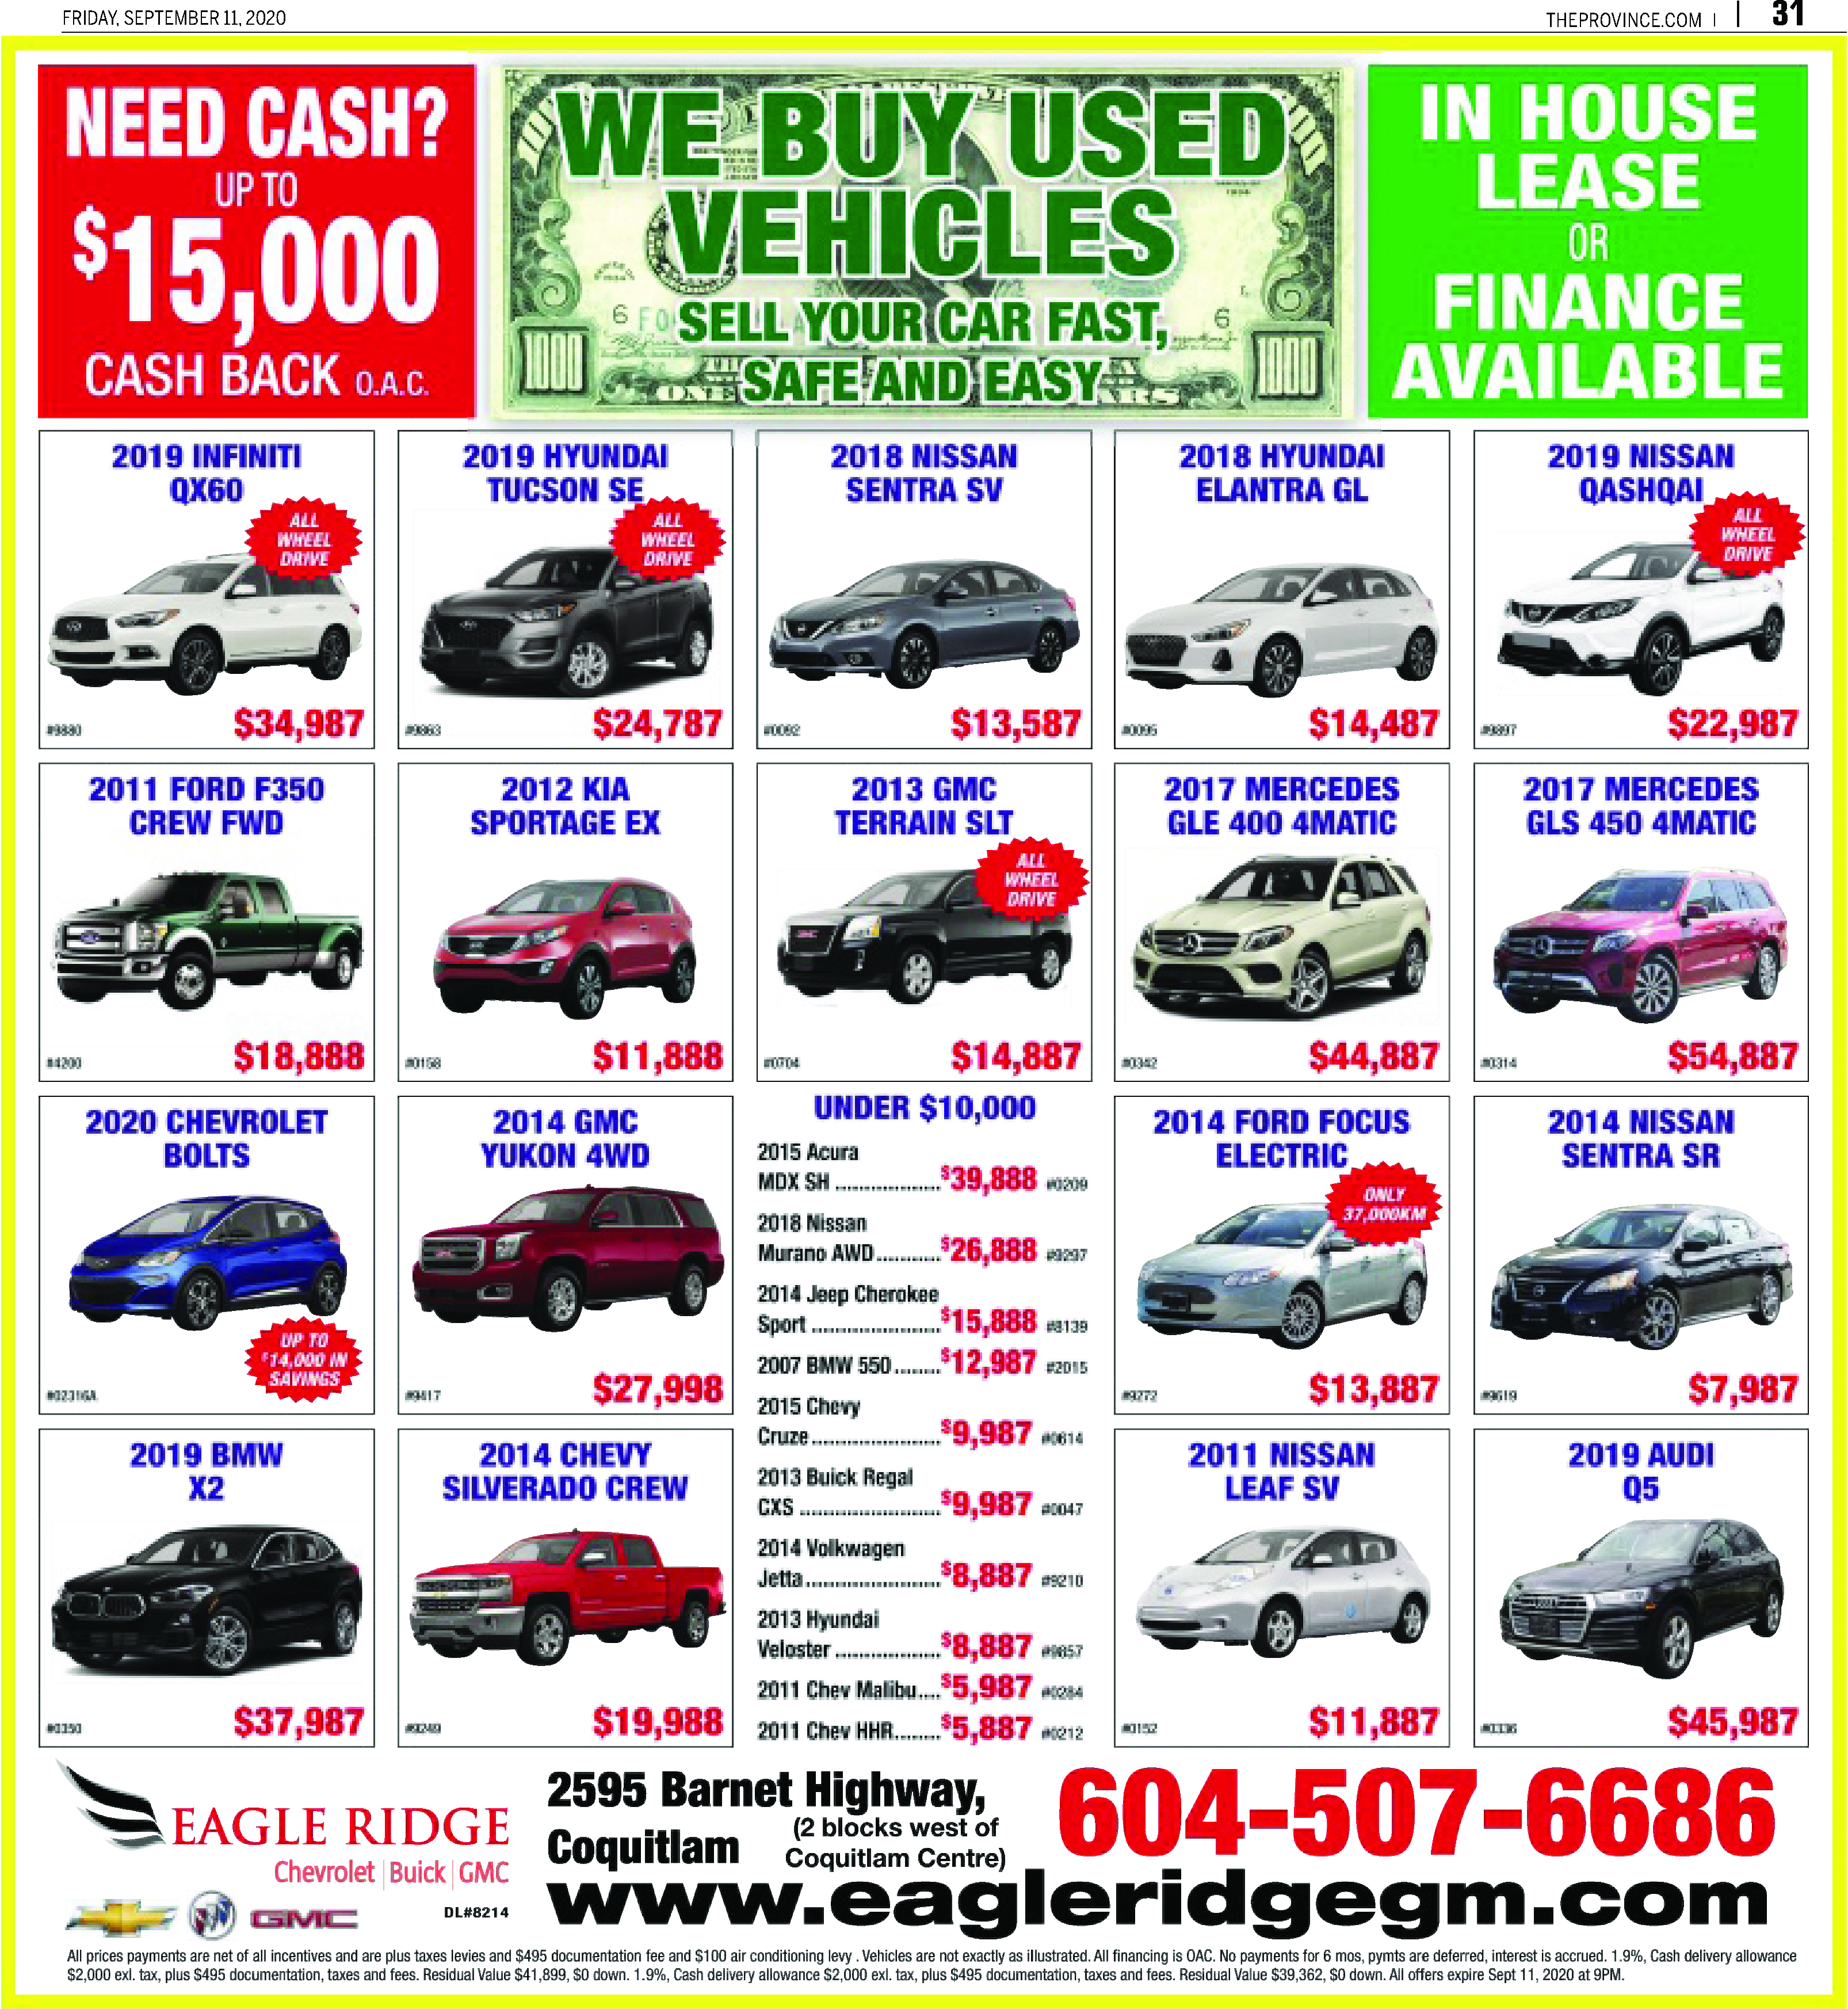 Imports/Trucks/Vans/SUVs/Cars on Sale